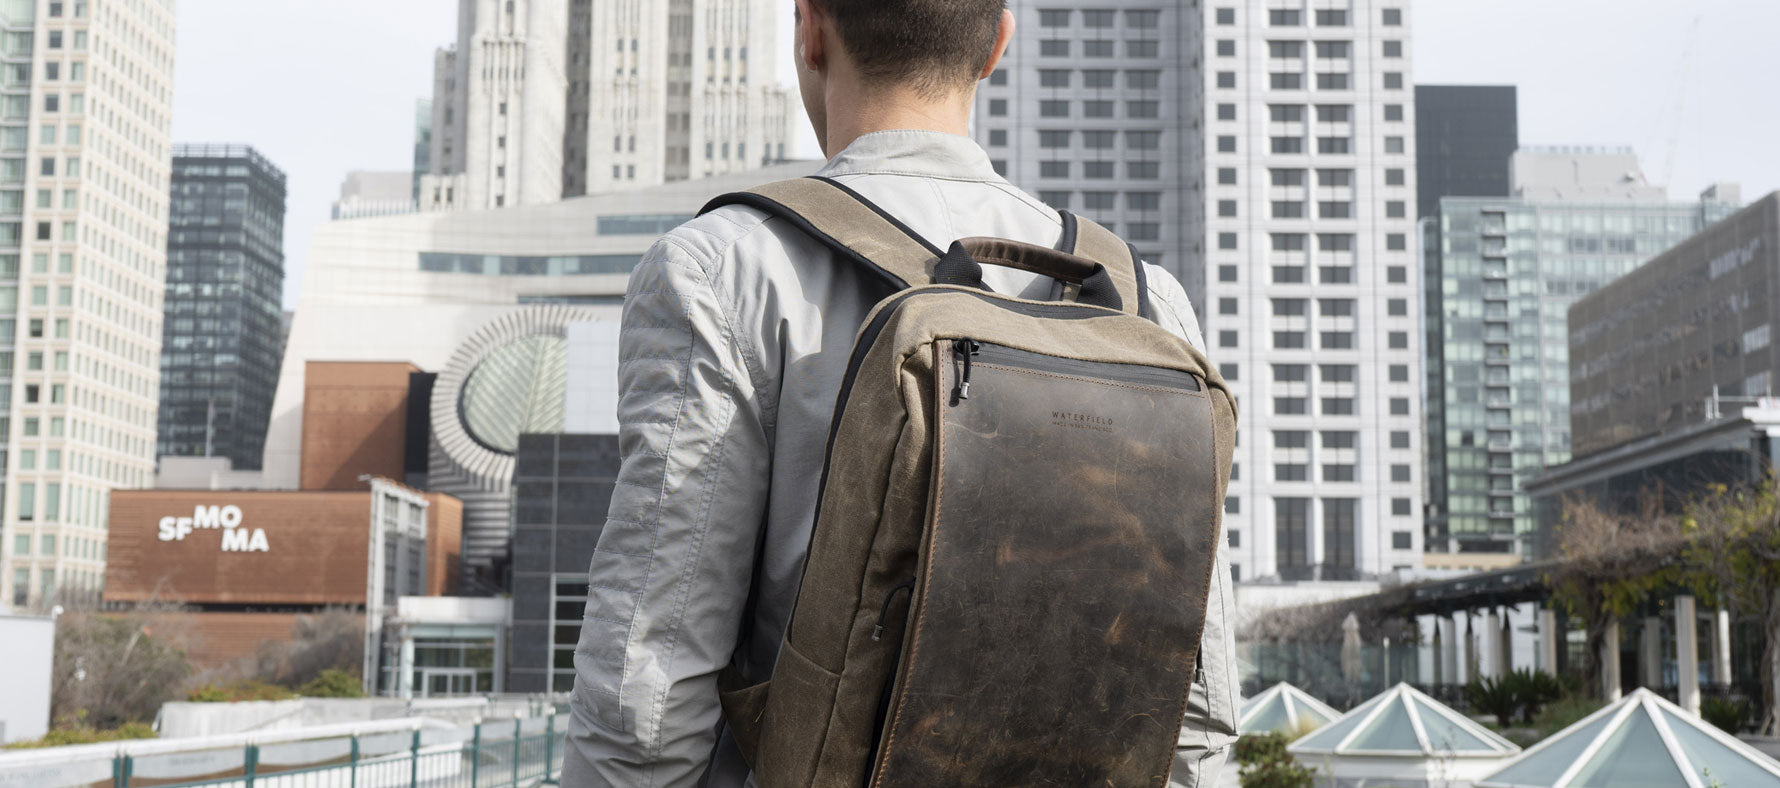 0b8058f35706 WaterField Designs | Custom-fit bags and cases made in San Francisco